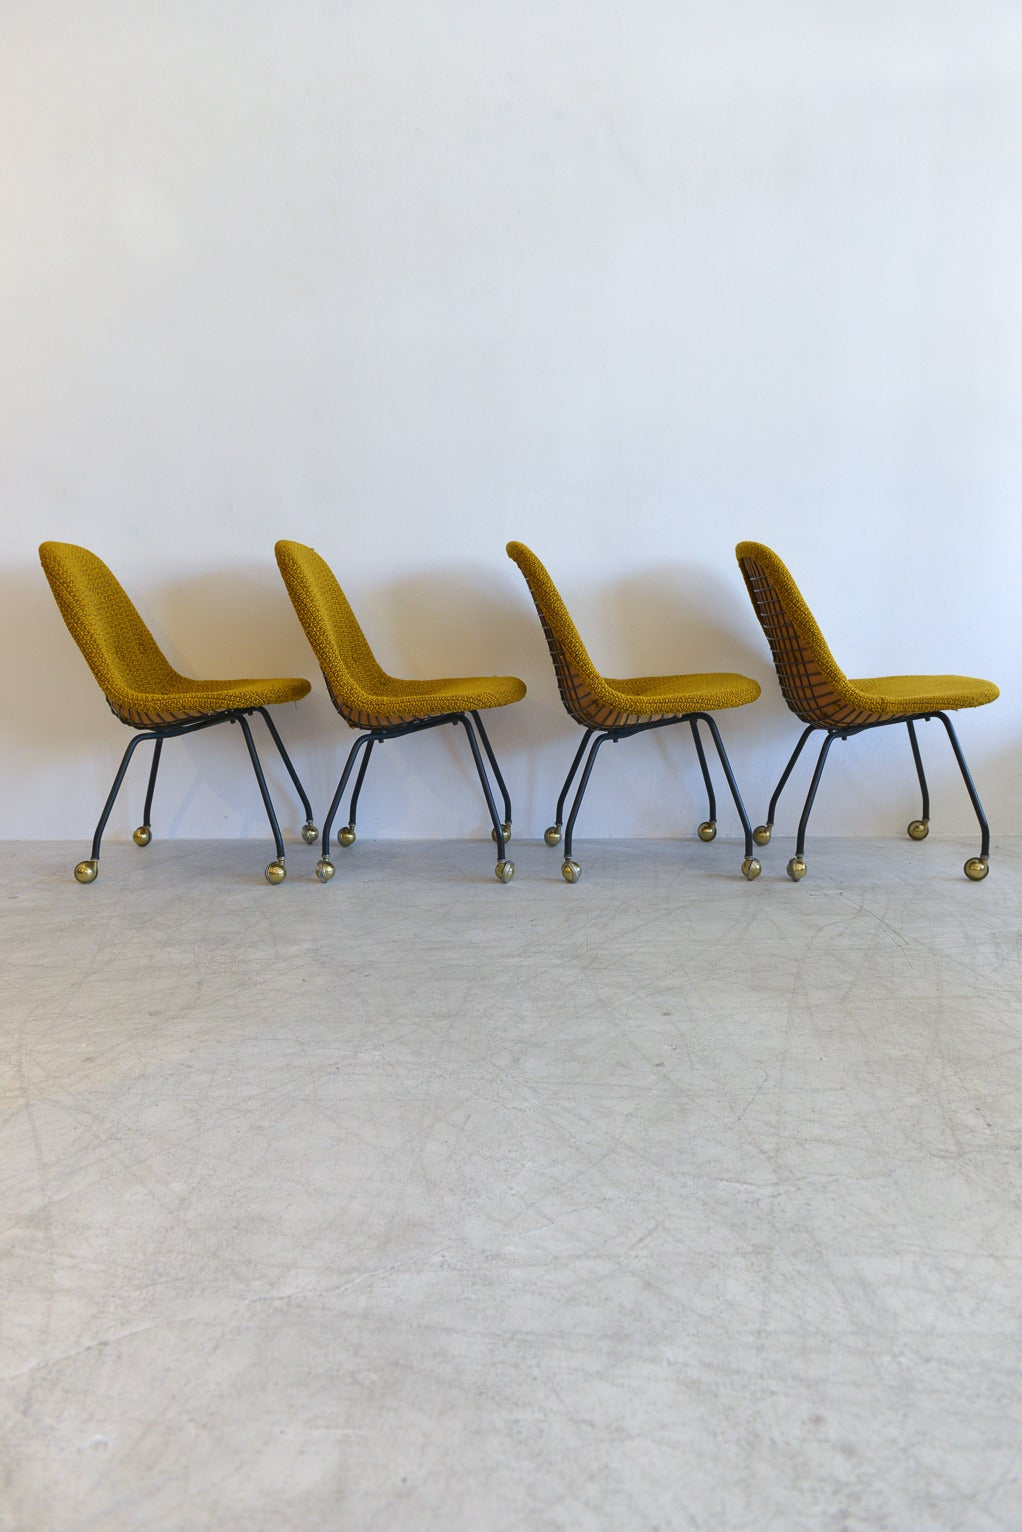 Charmant Rare Set Early Charles Eames Wire Mesh Chairs In Excellent Condition For  Sale In Costa Mesa